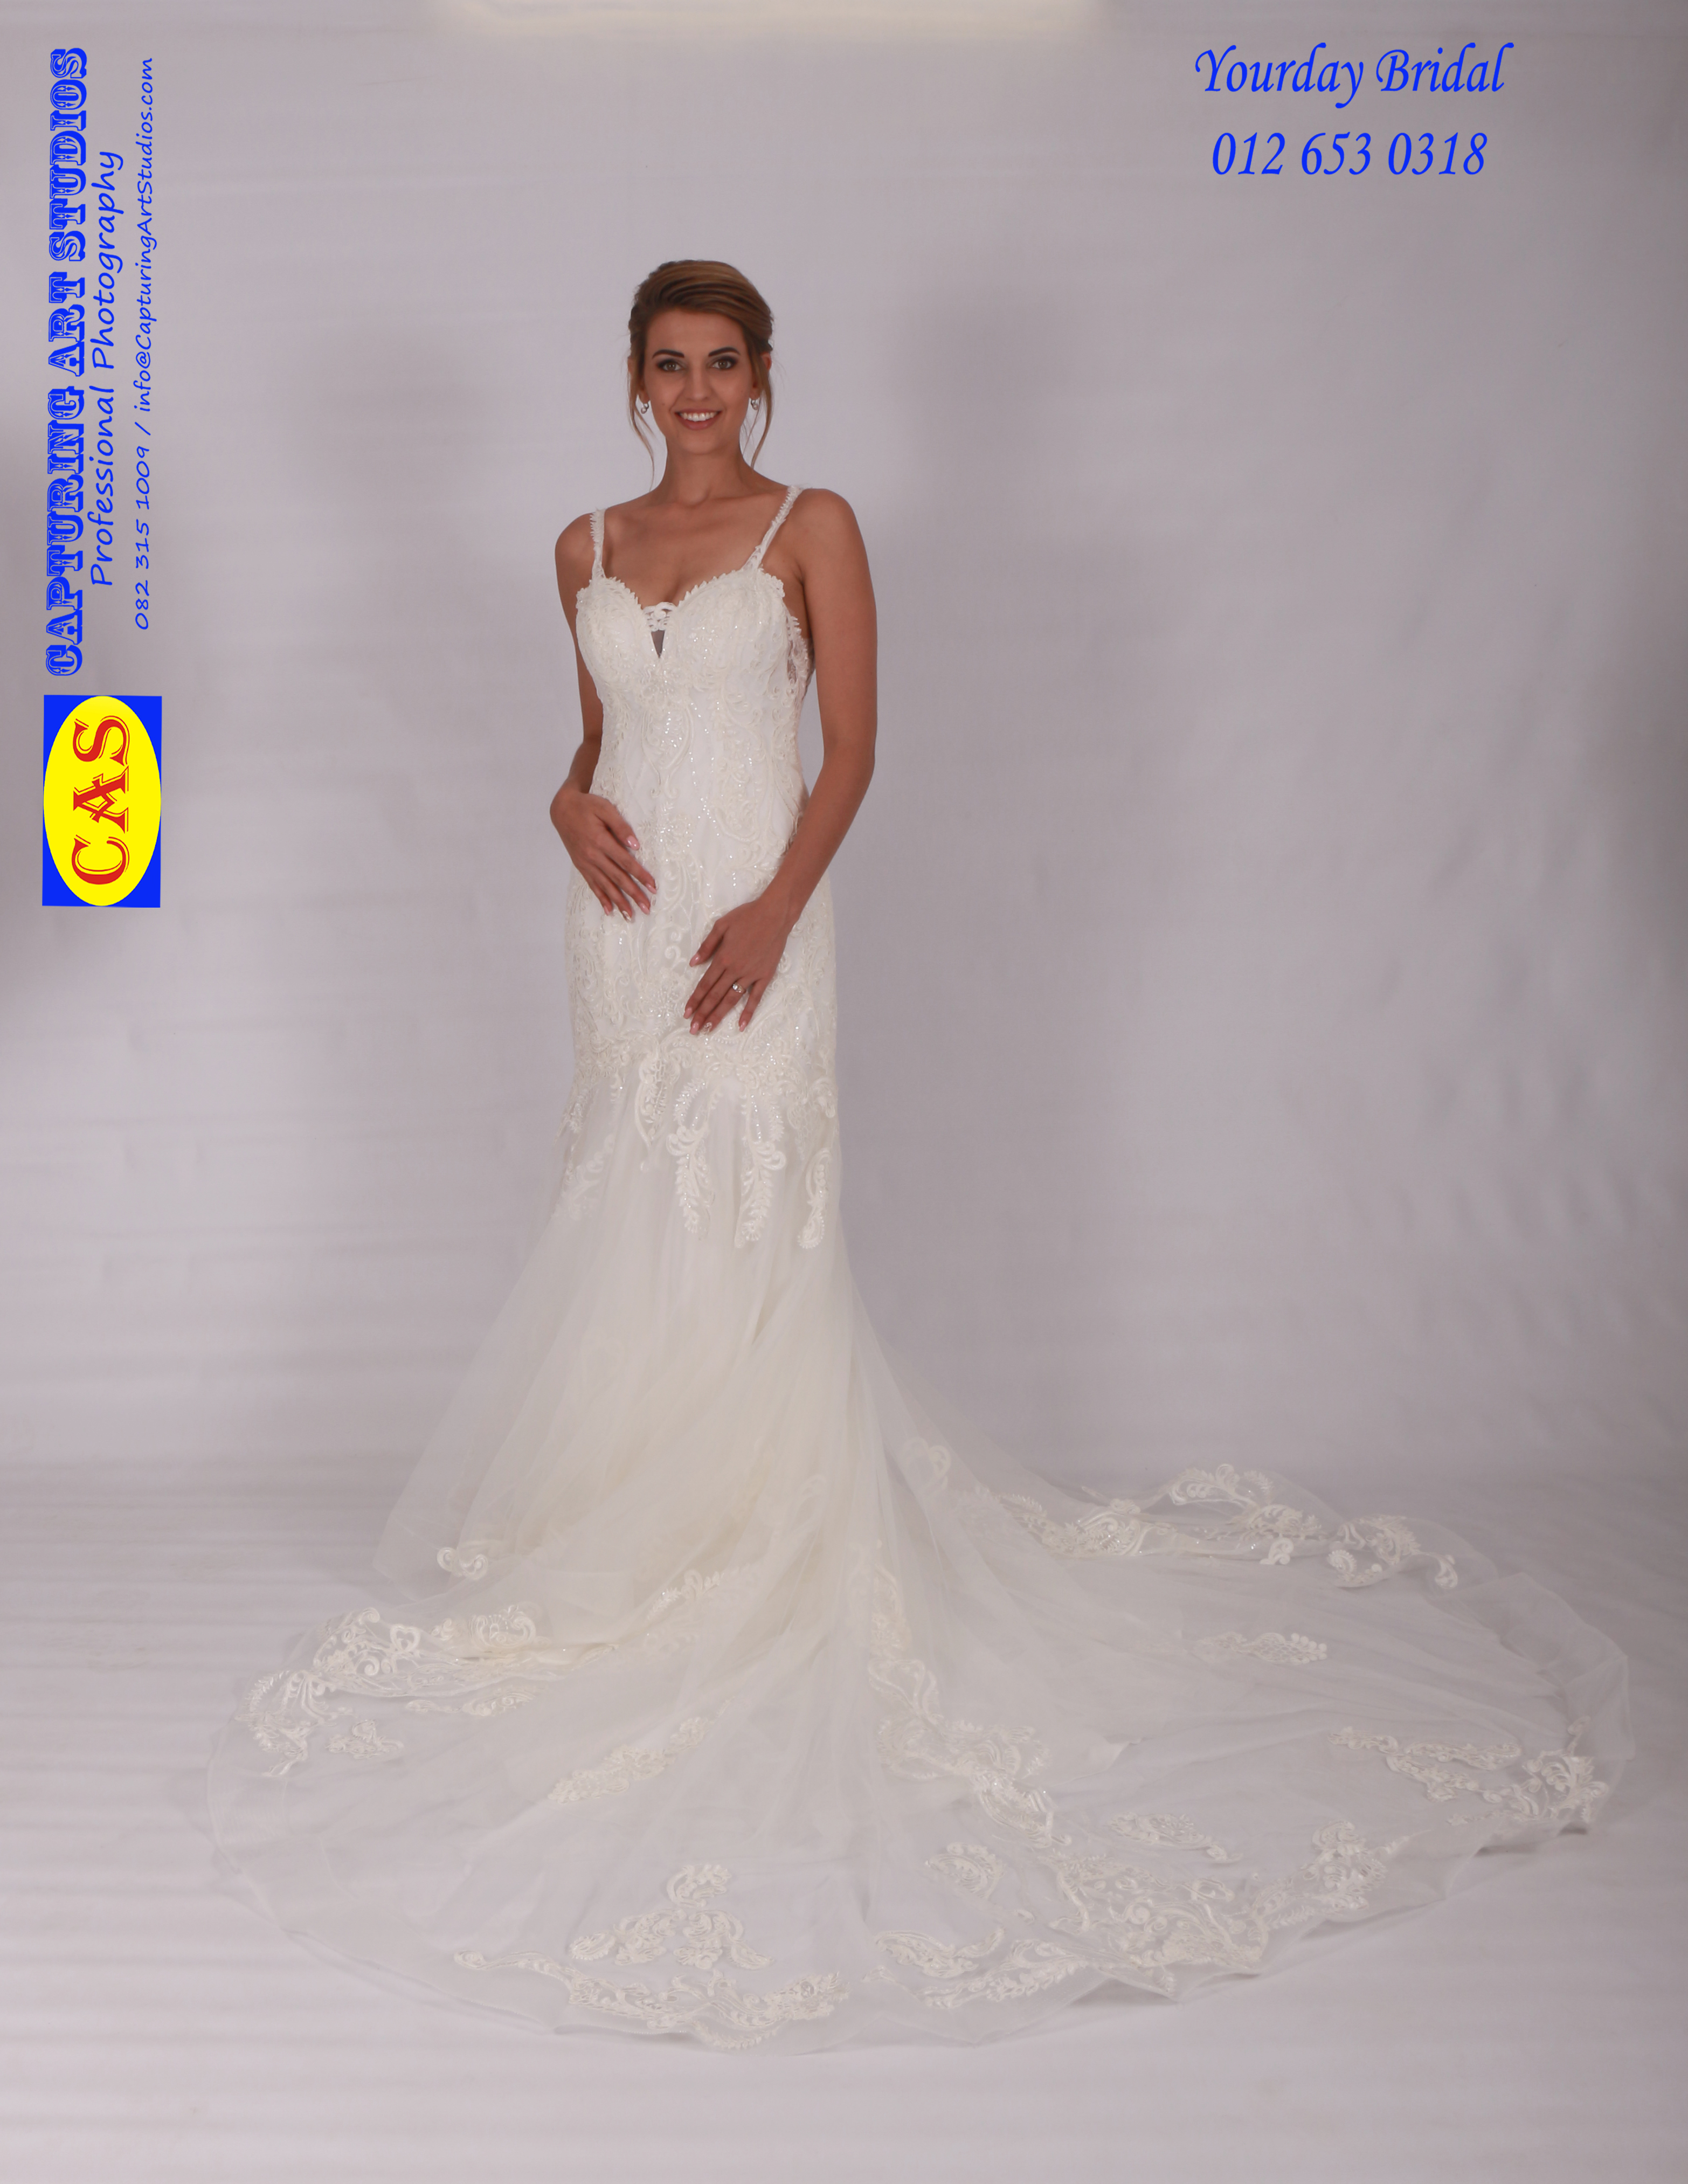 exclusive-wedding-collection-3-f